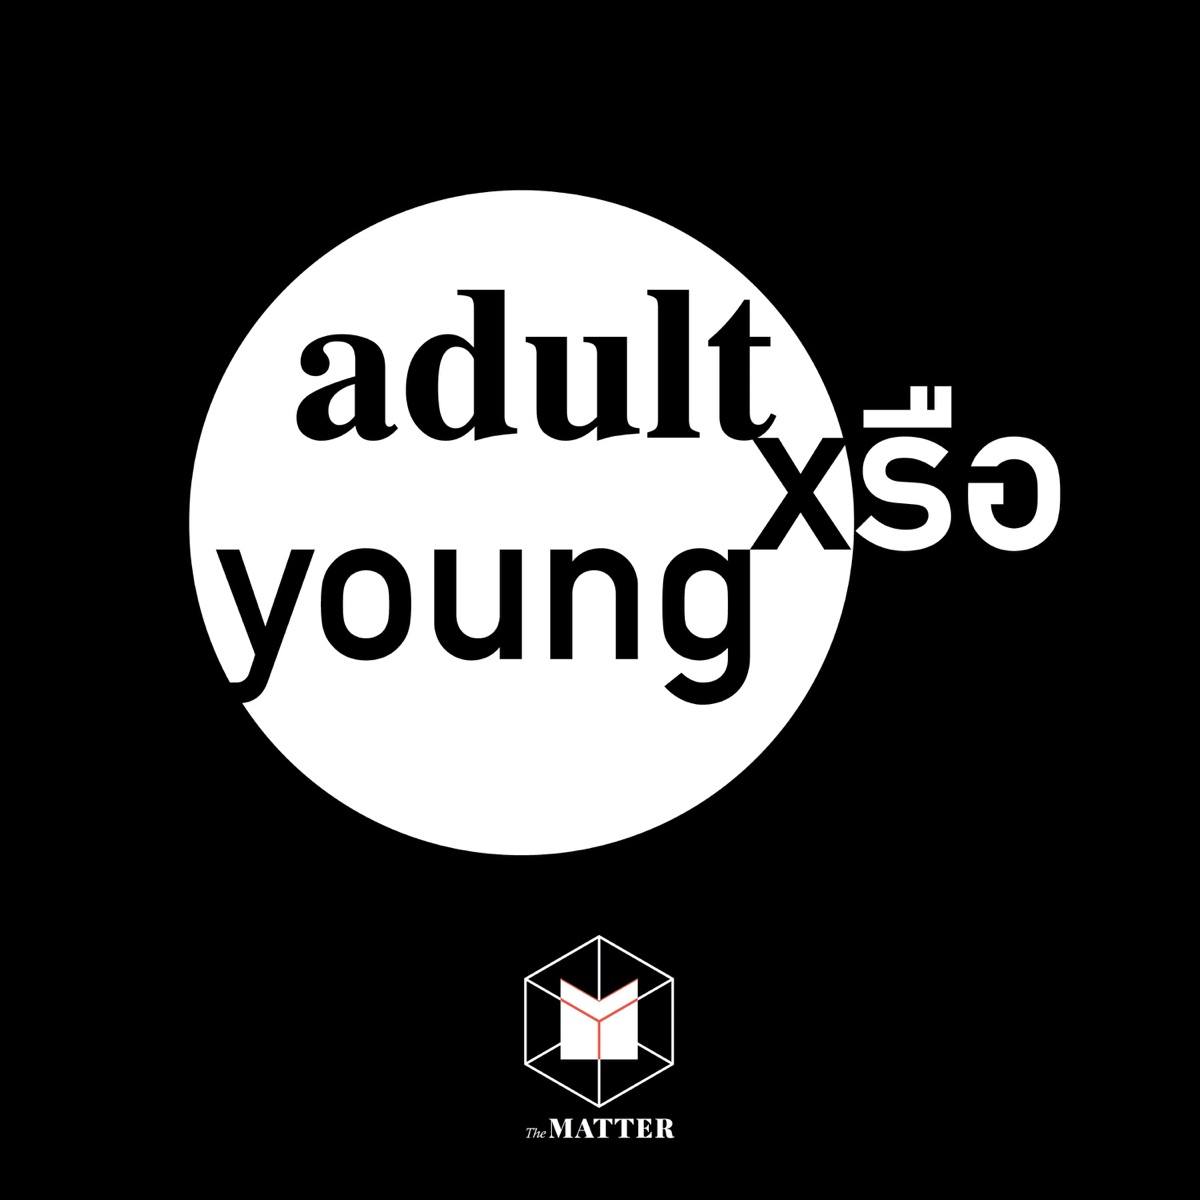 Adult หรือ Young